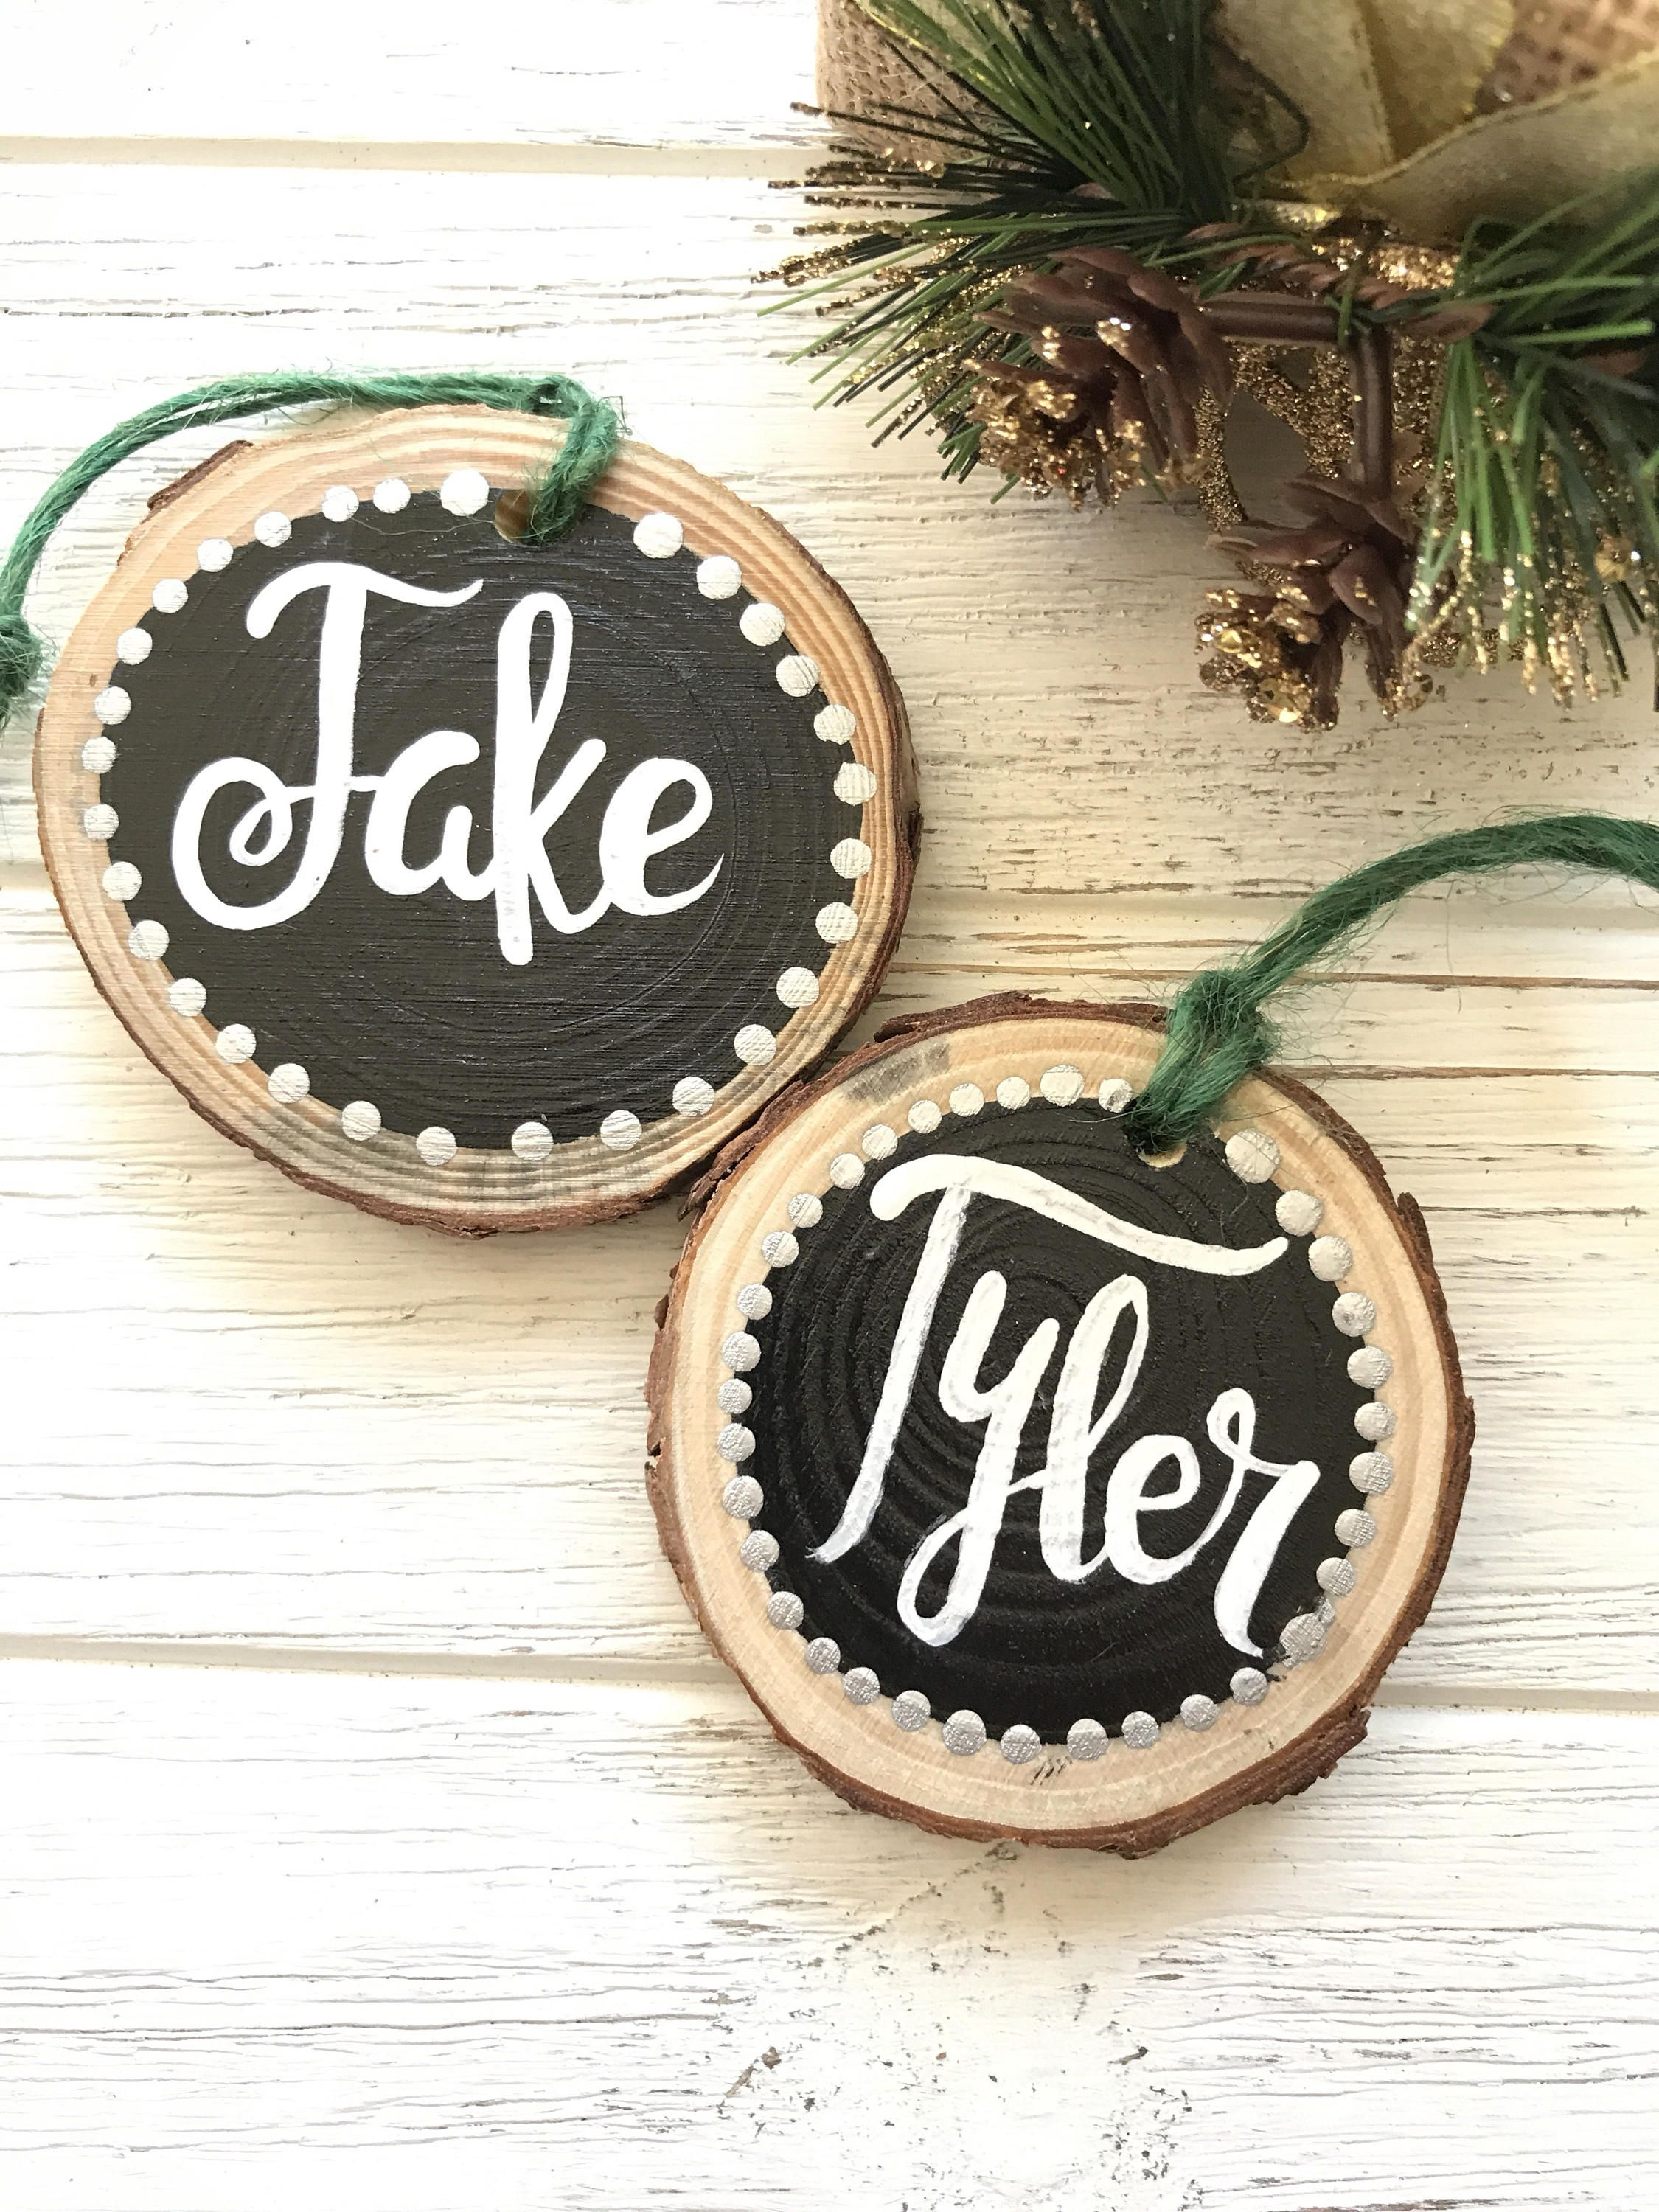 Custom Name Ornament Wood Slice Tags Gift Ornaments By Paintedsea On Etsy